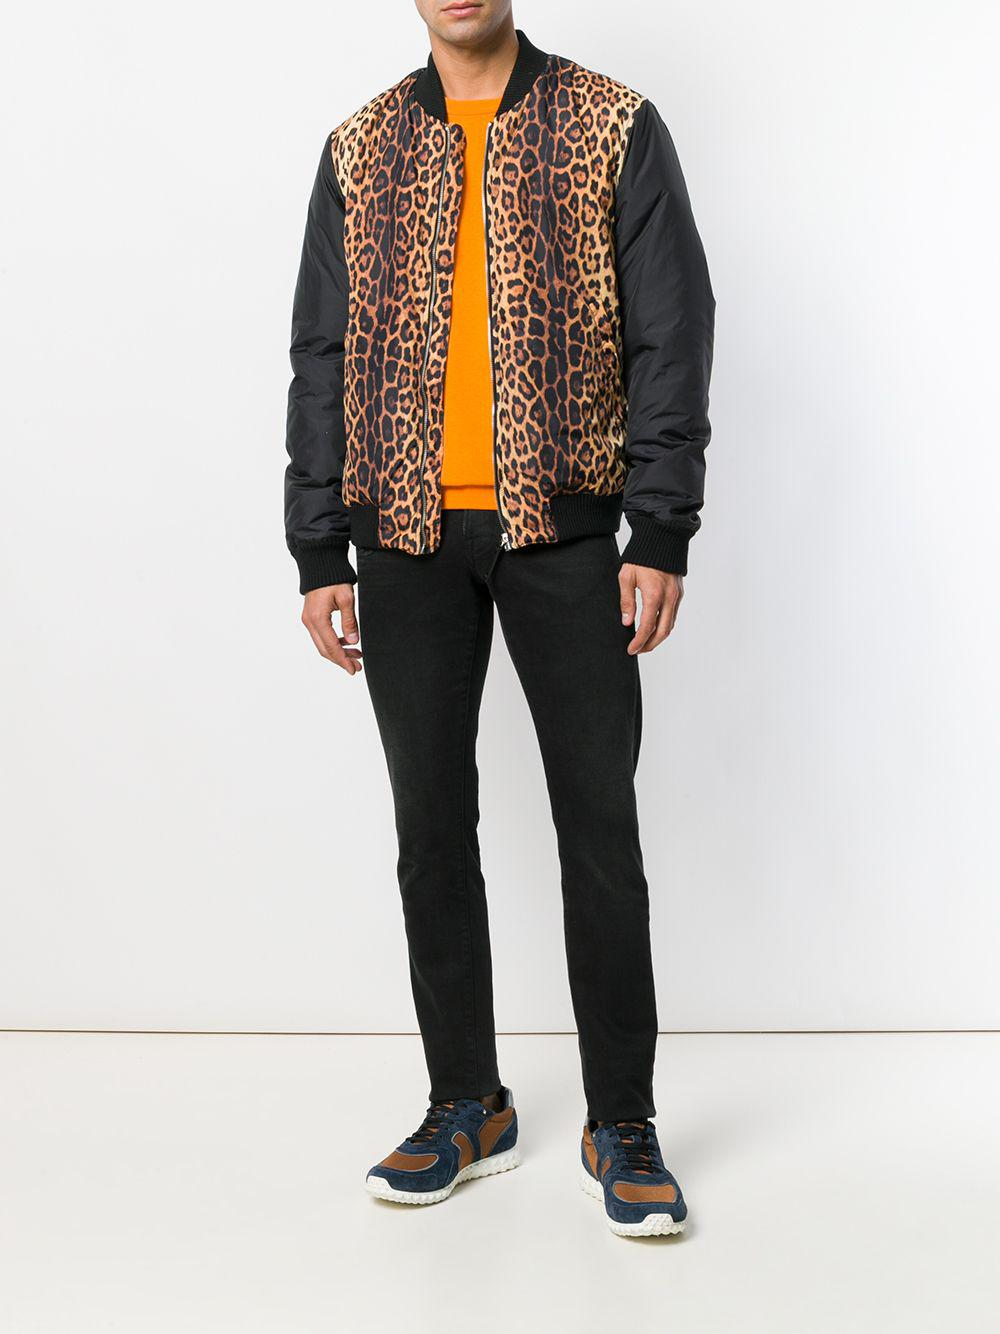 Moschino Synthetic Animal Print Bomber Jacket in Black for Men